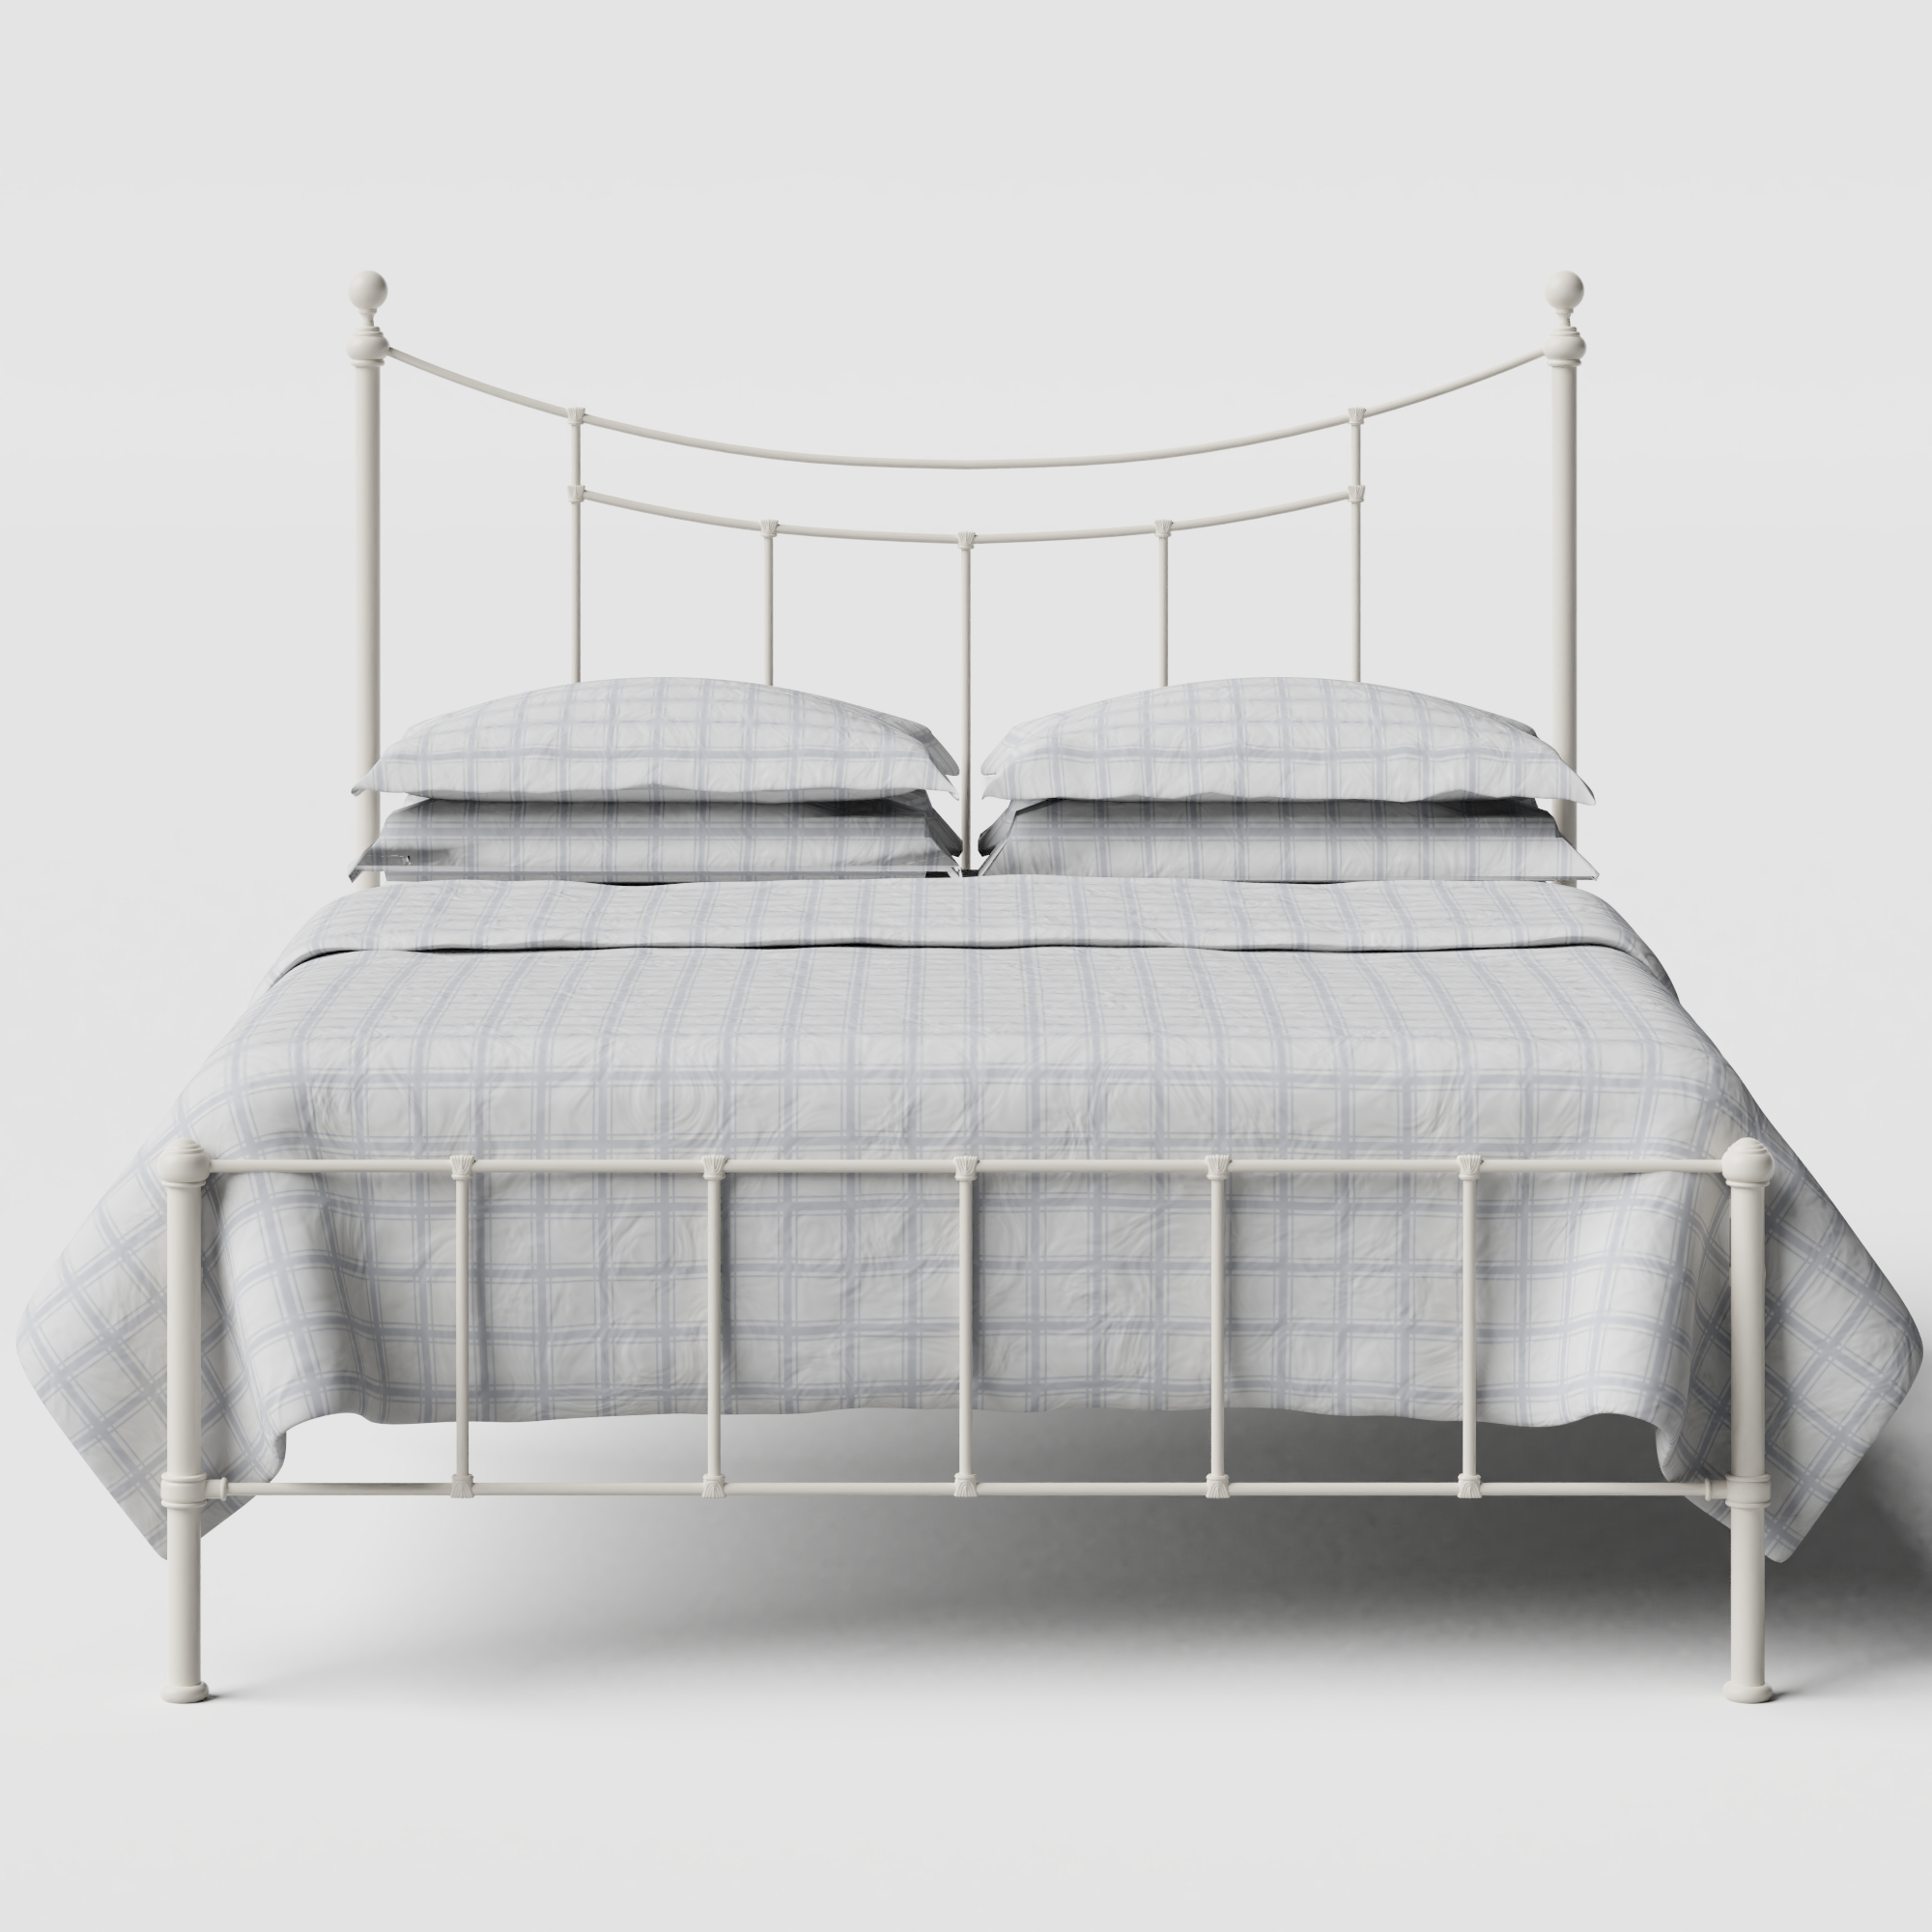 Isabelle iron/metal bed in ivory